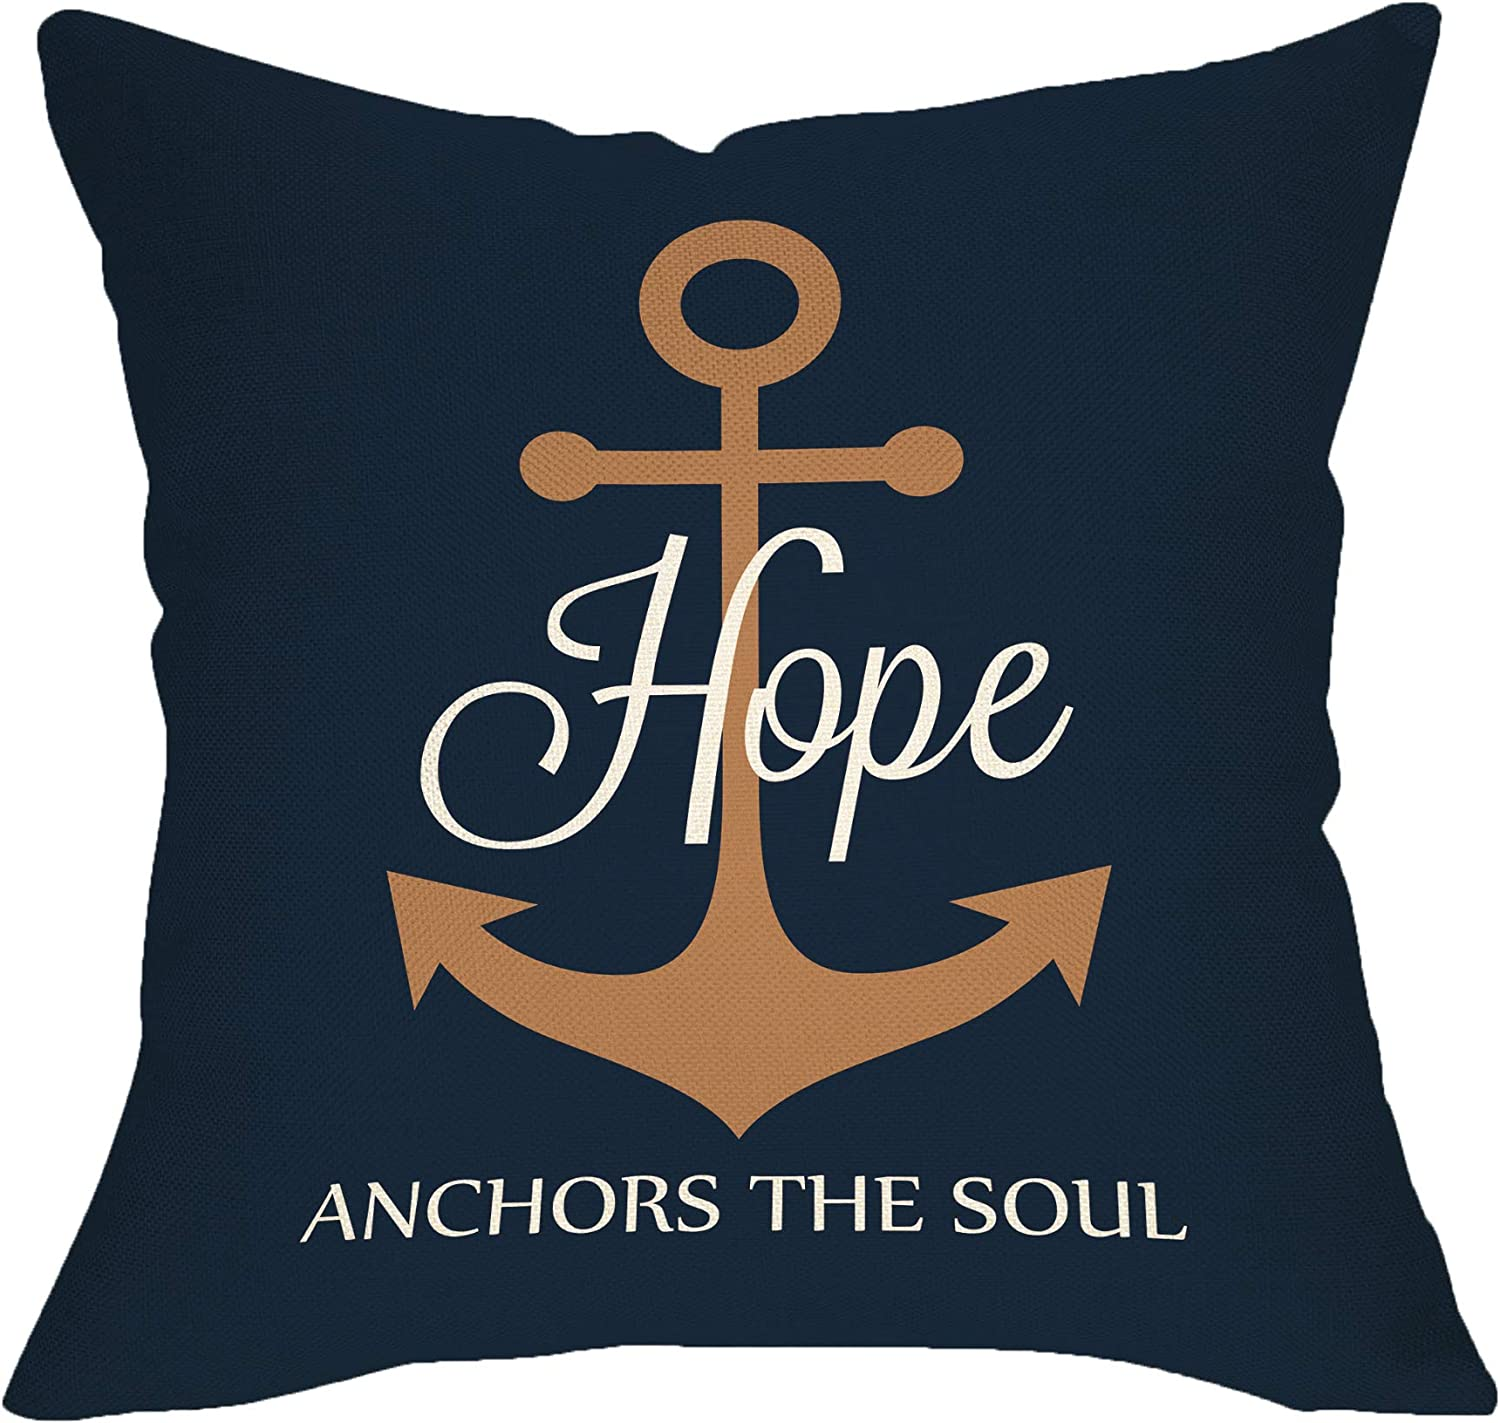 "Softxpp Hope Anchors The Soul Inspirational Decoration Nautical Summer Farmhouse Throw Pillow Cover Navy Blue Sign Home Decor Cushion Case Decorative for Sofa Couch 18"" x 18"" Inch Cotton Linen"